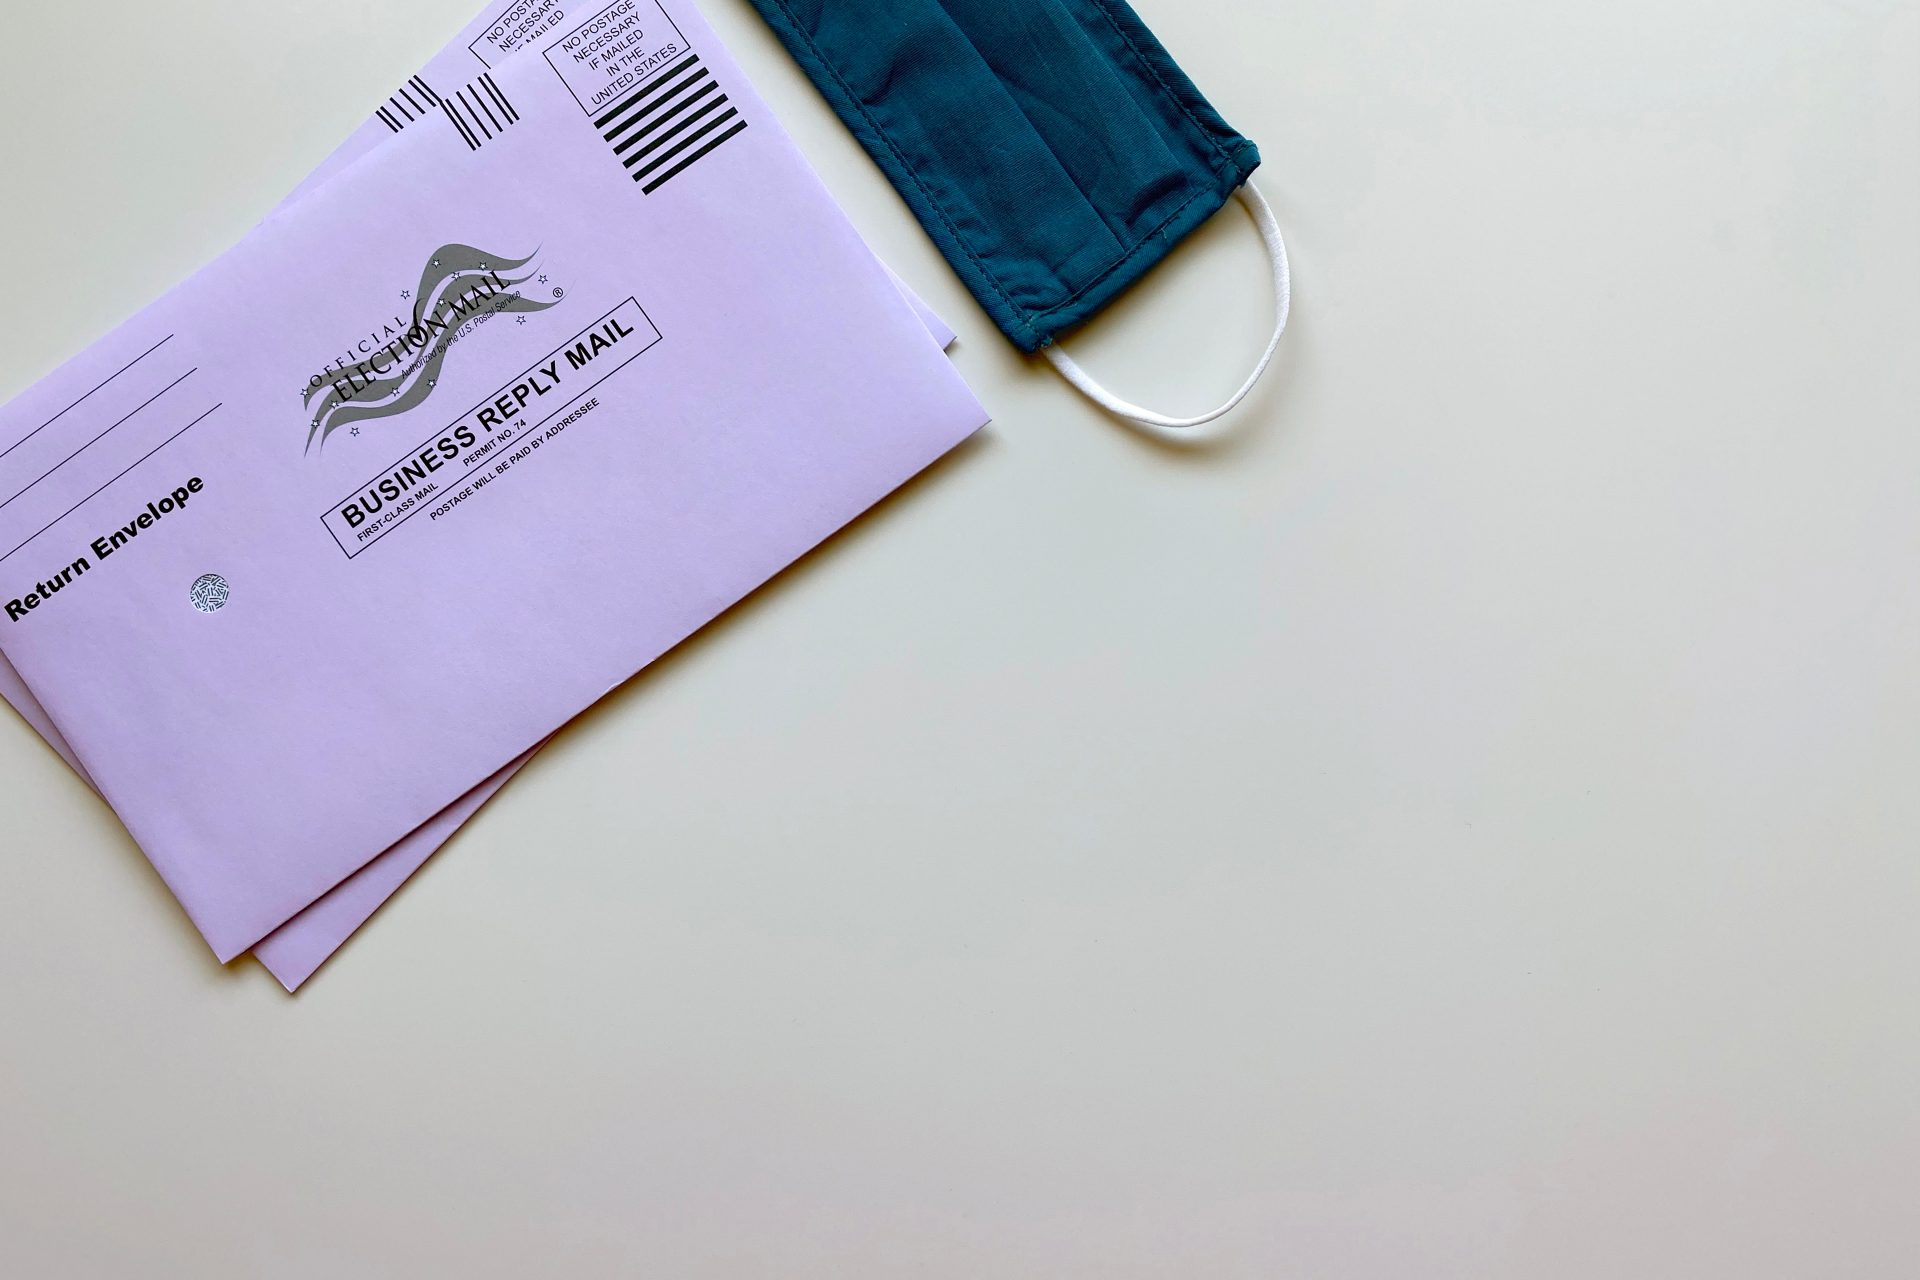 Get Your Ballot by Mail (Not Email) to Save Time and Money